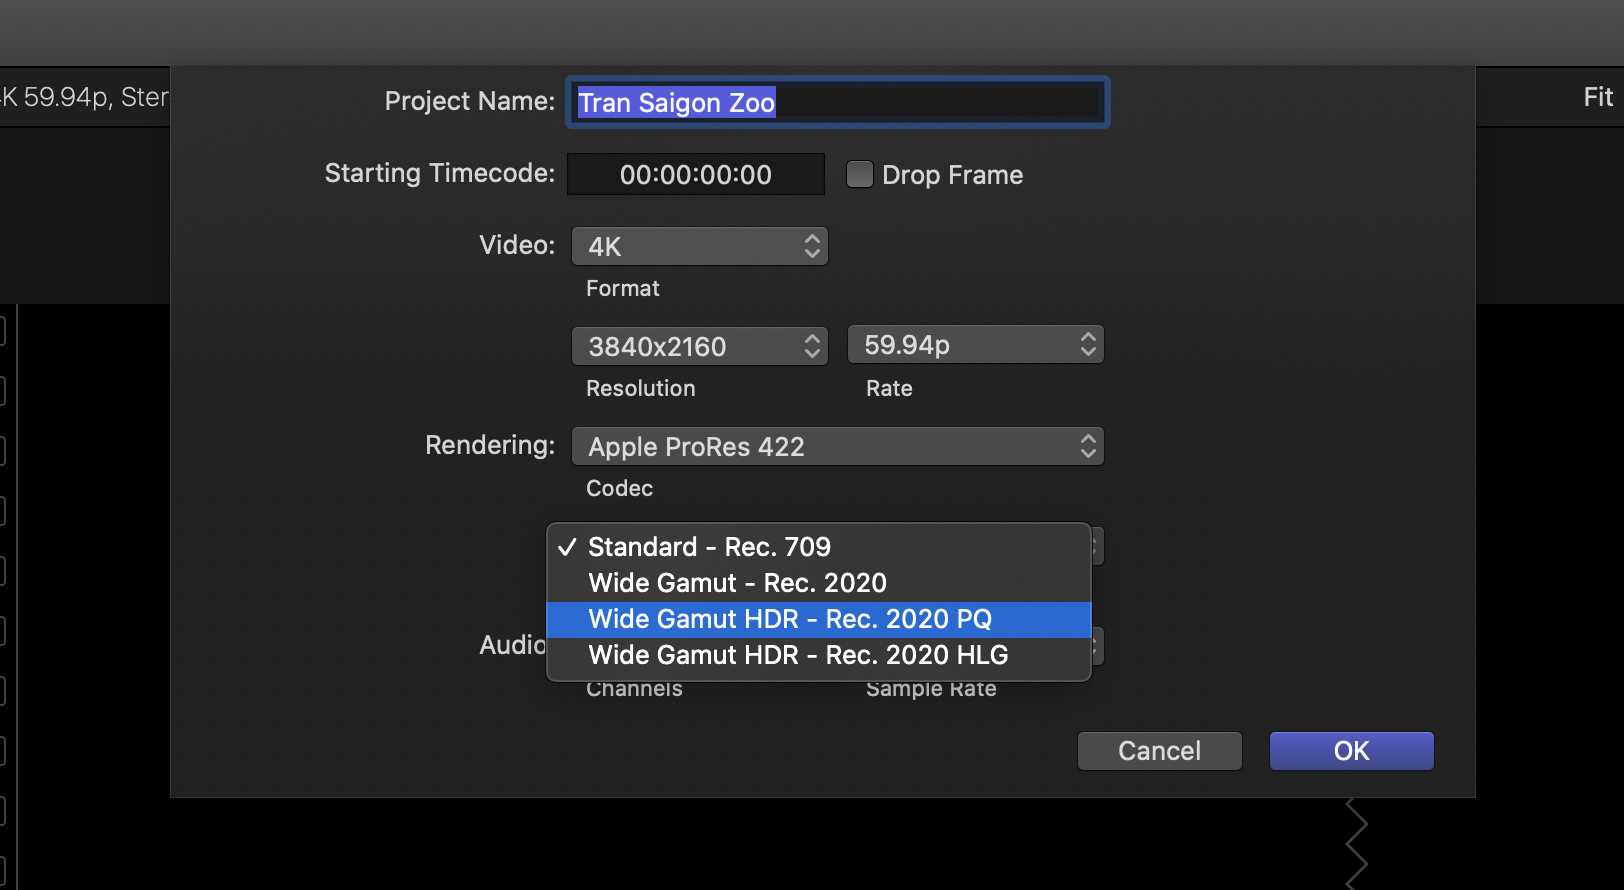 12. Select 'Wide Gamut HDR - Rec. 2020 PQ'.